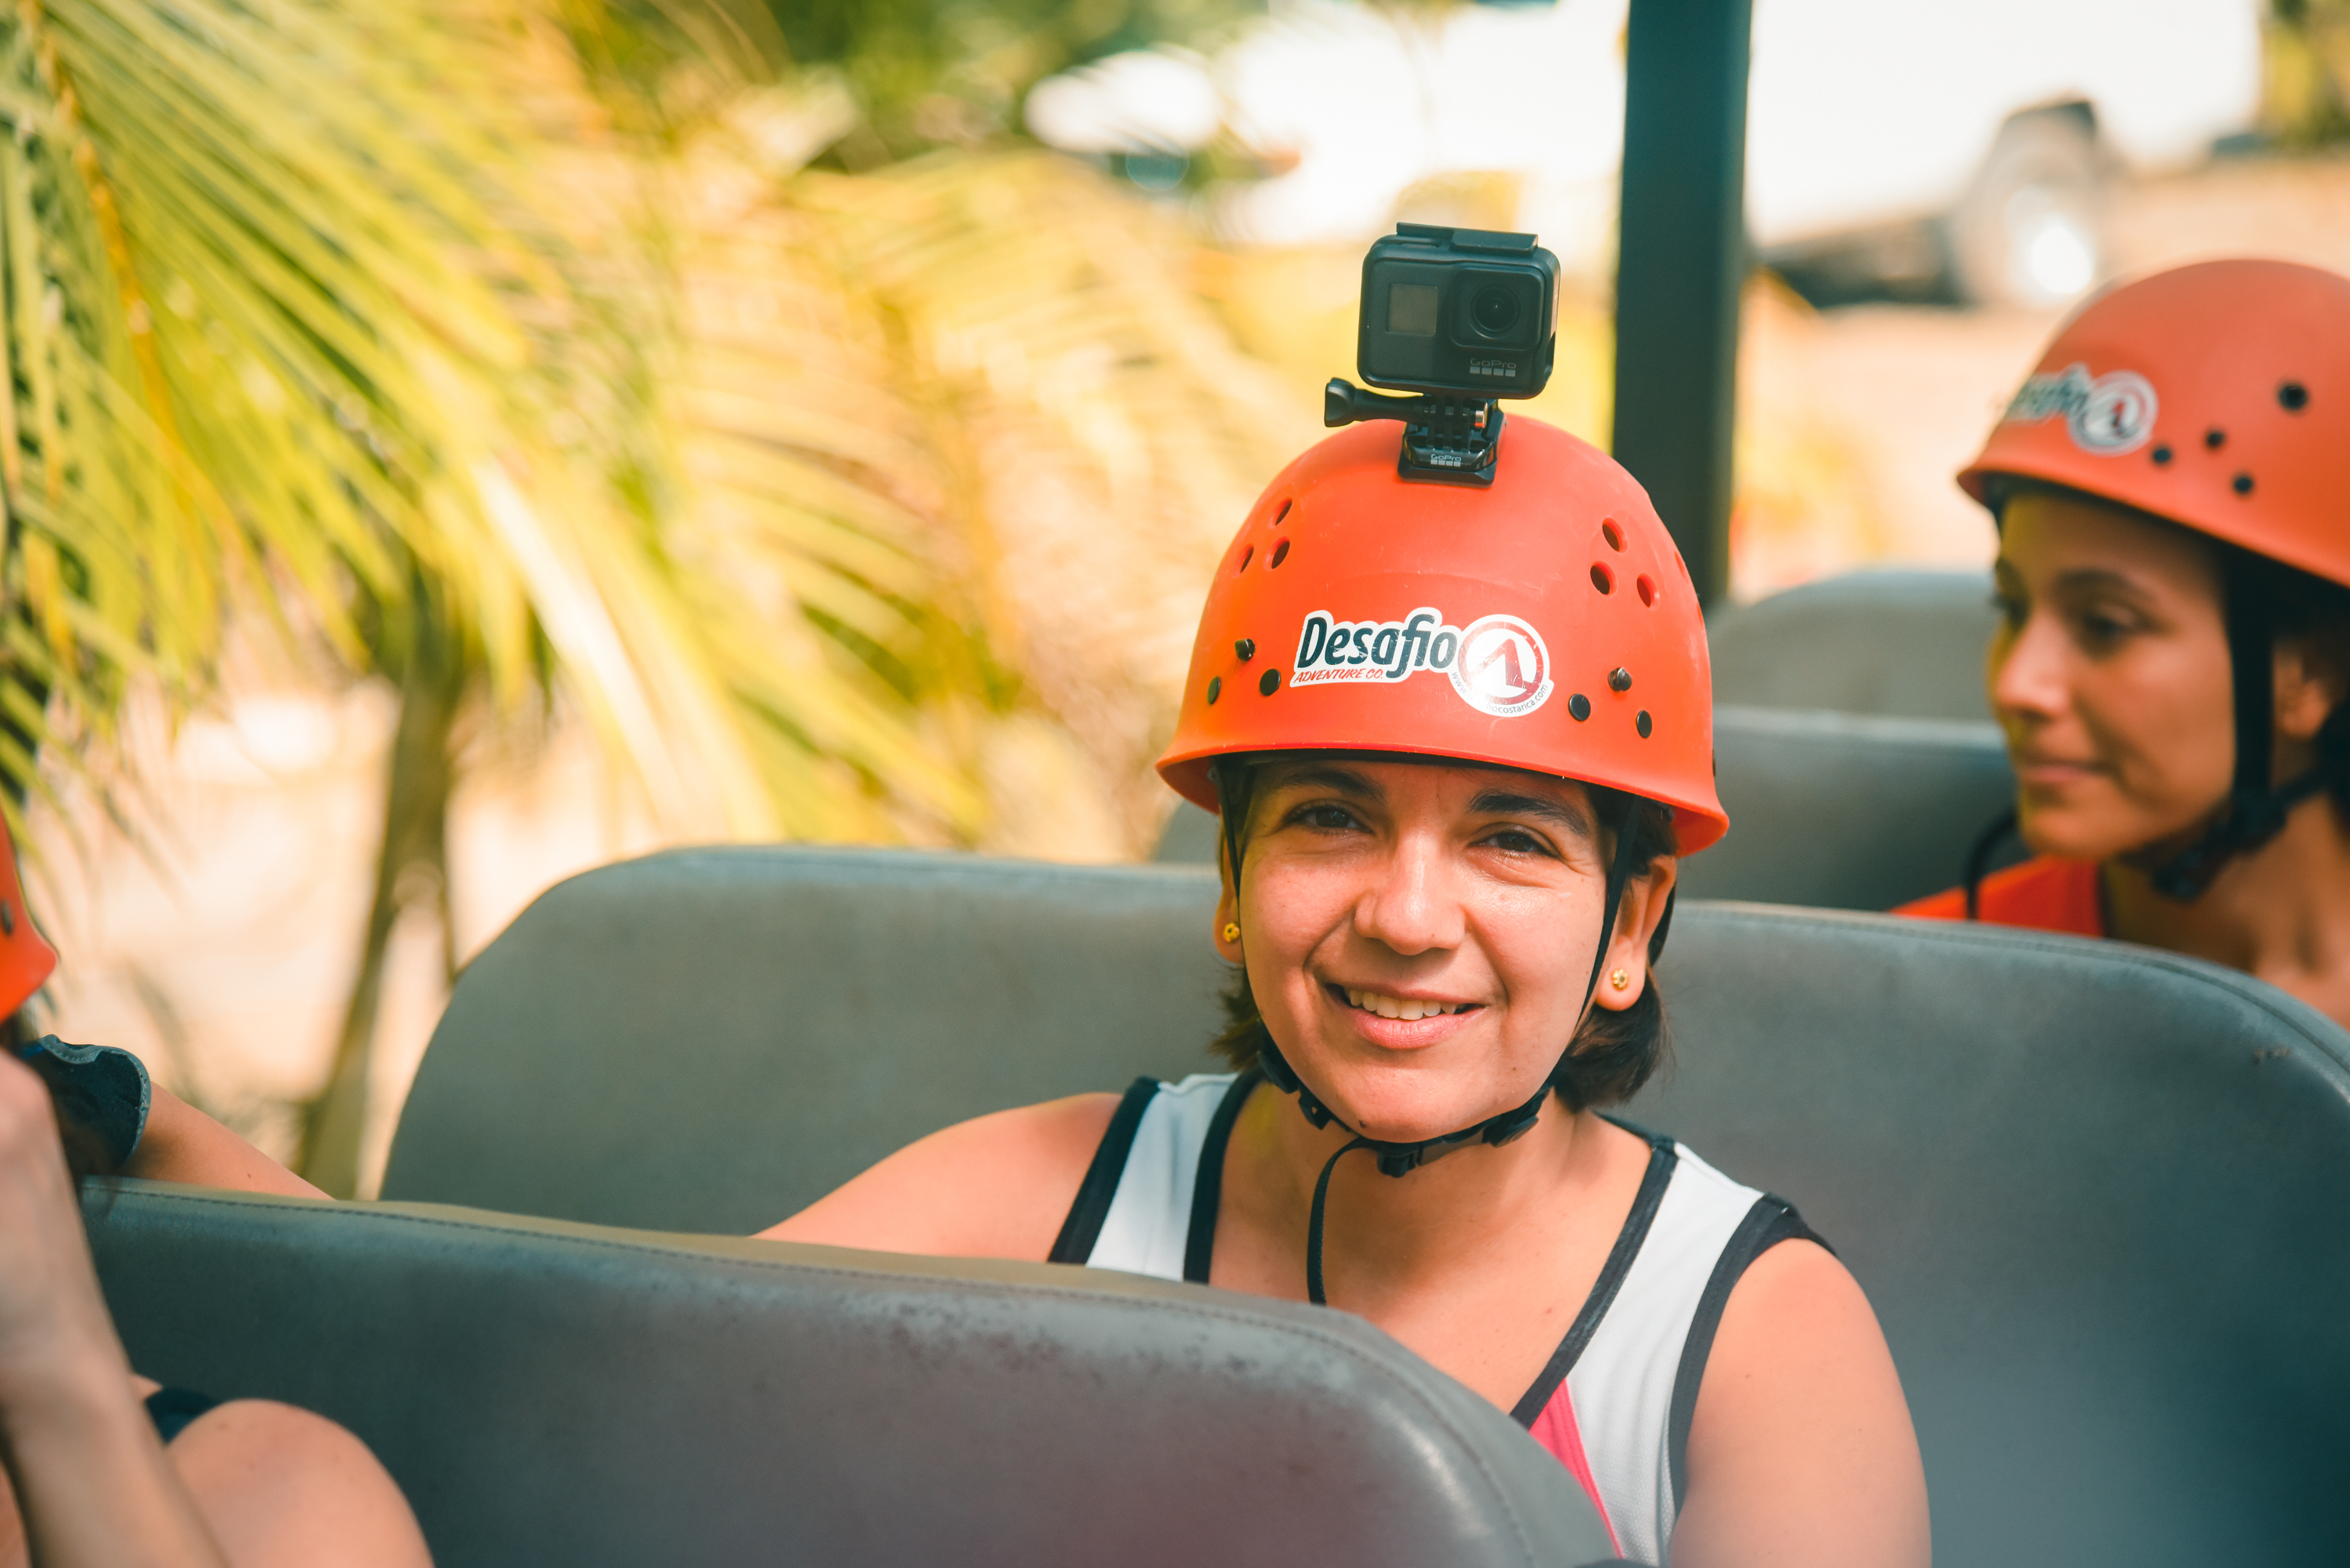 Desafio loves to be the reason someone smiles, your smile means the world to us in La Fortuna Arenal Volcano!